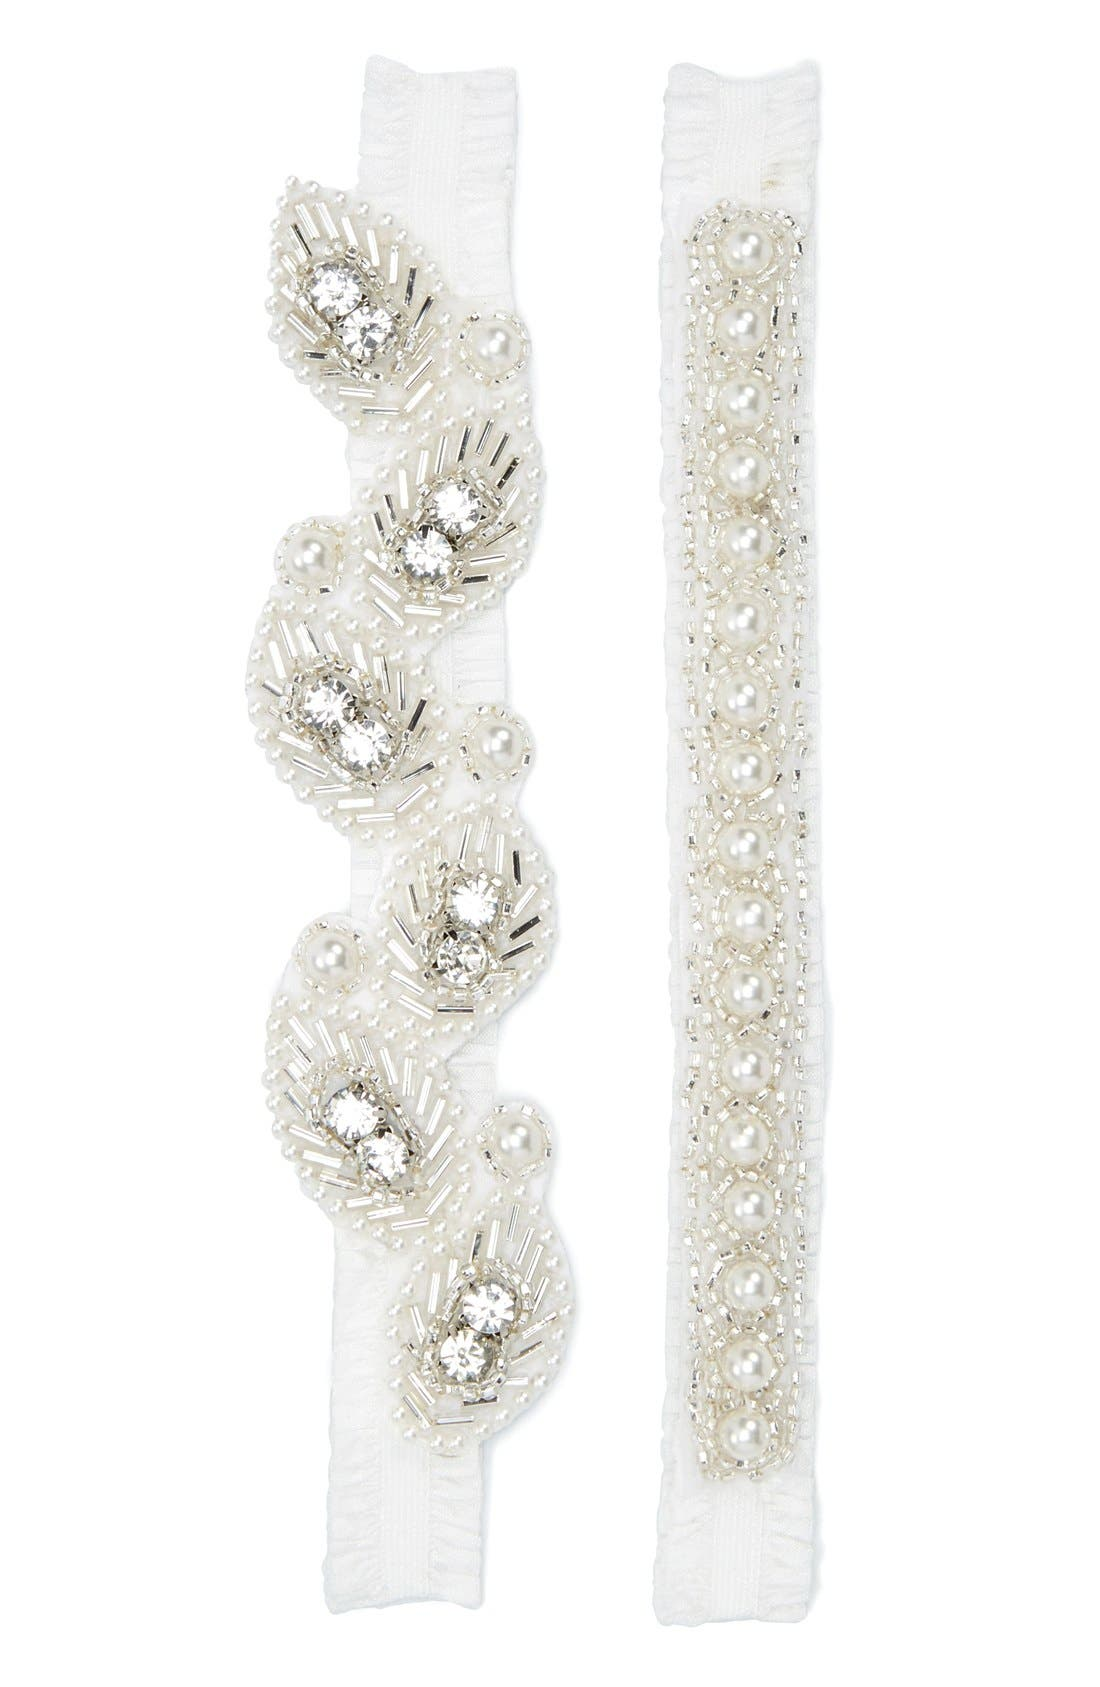 Nestina Accessories 'Ashley' Bridal Garters (Set of 2)